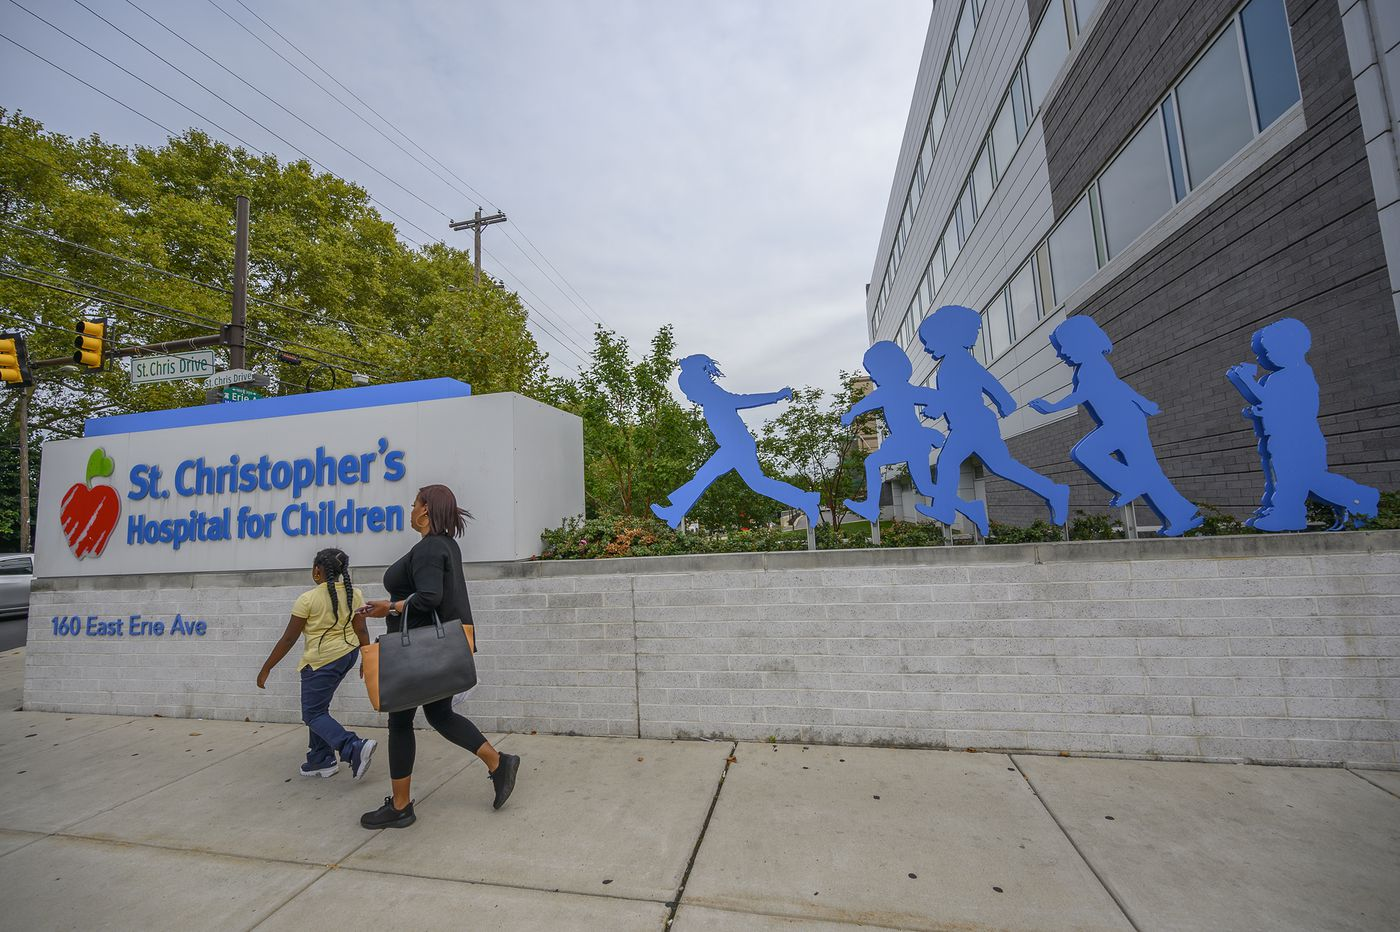 UPenn, CHOP stand ready to help as new owners take over Philly's St. Chris children's hospital